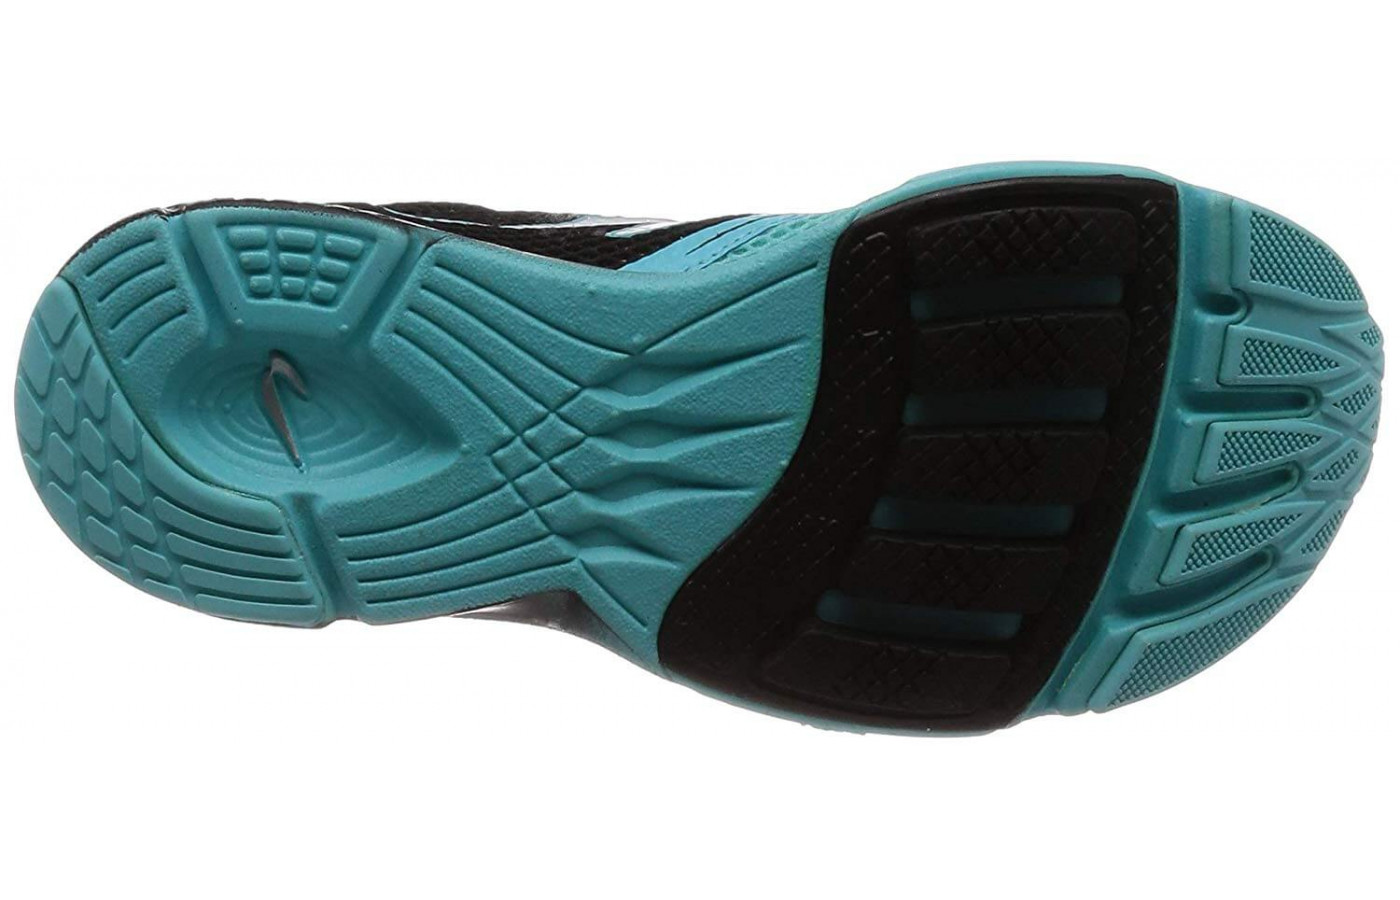 The outsole of Distance 7 aids in responsiveness and flexibility